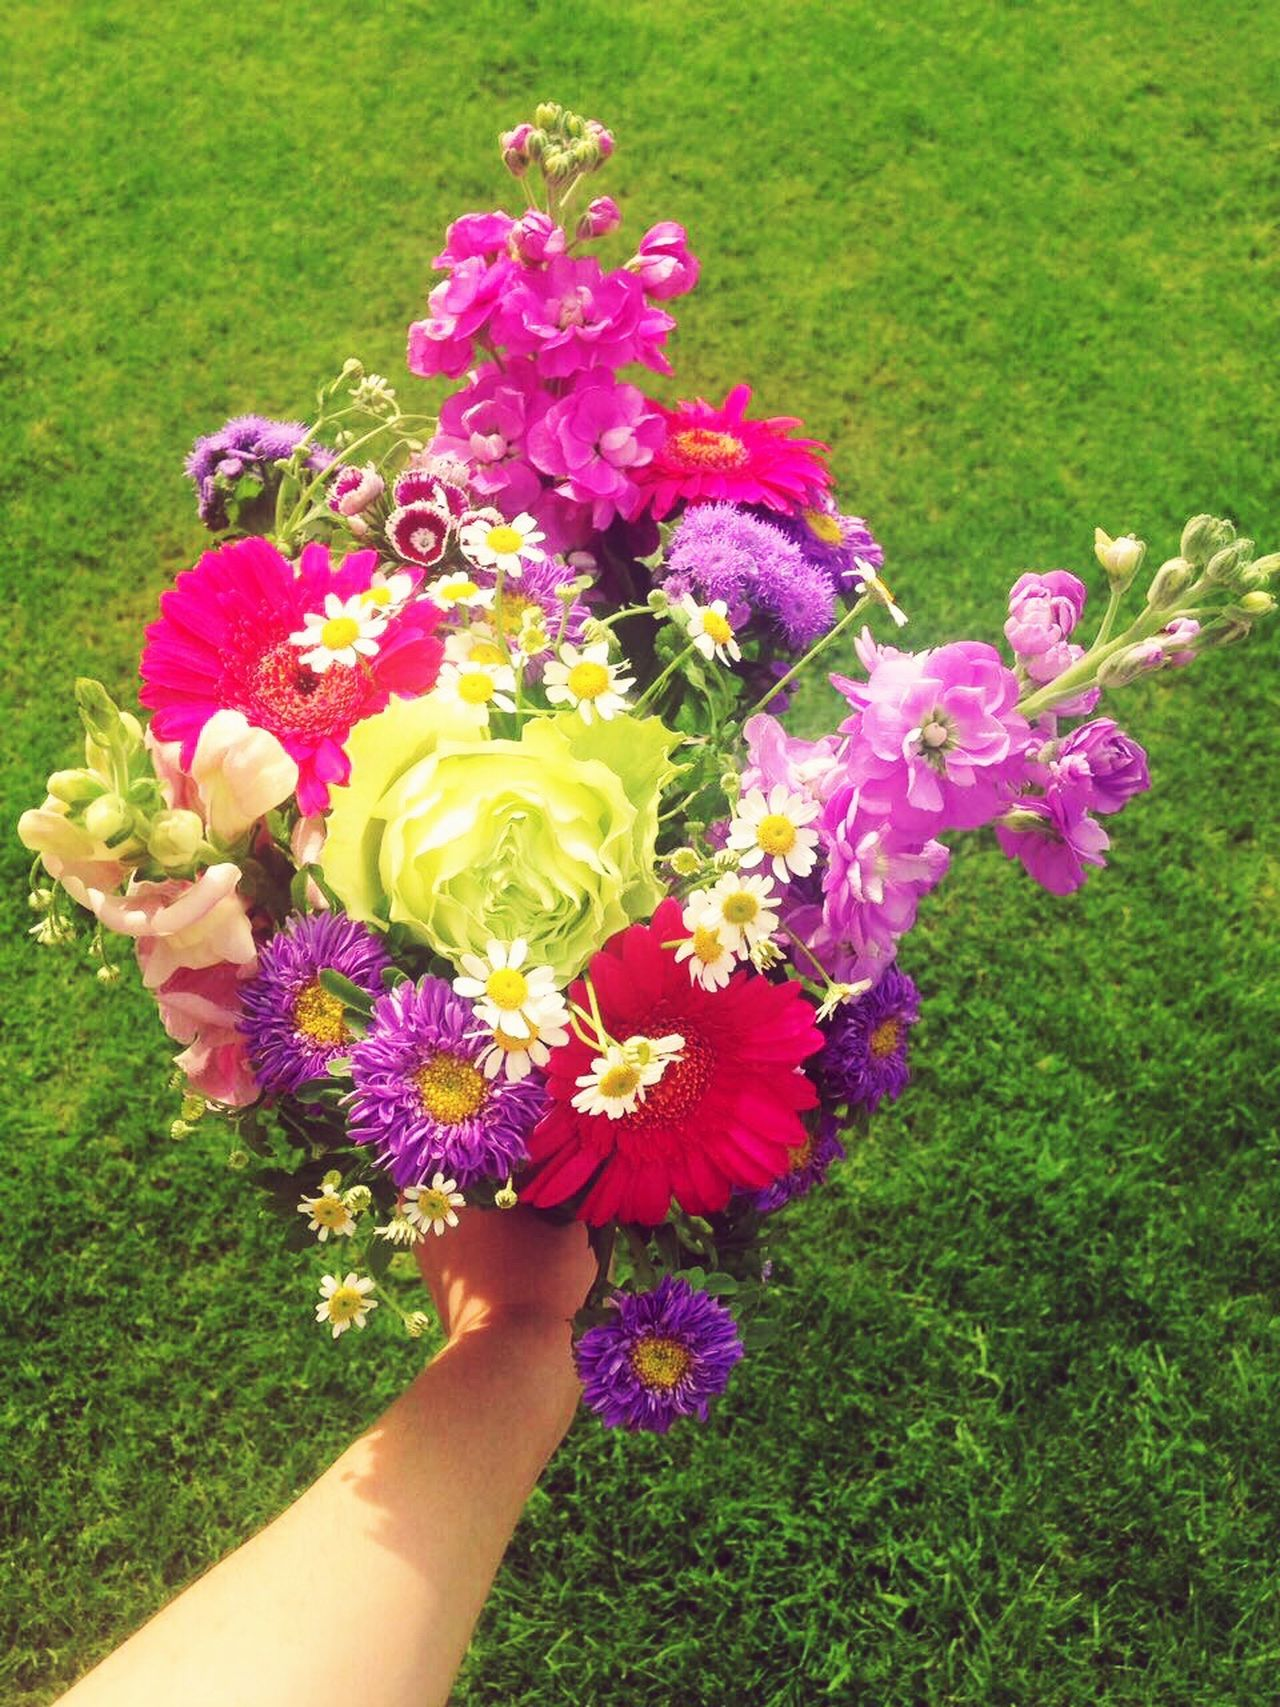 Flower Human Hand Grass Human Body Part Nature Freshness Holding Petal Beauty In Nature Fragility Growth One Person Real People Outdoors Flower Head Day Bouquet Of Flowers beautiful day with a beautiful bouquet 🌷💐